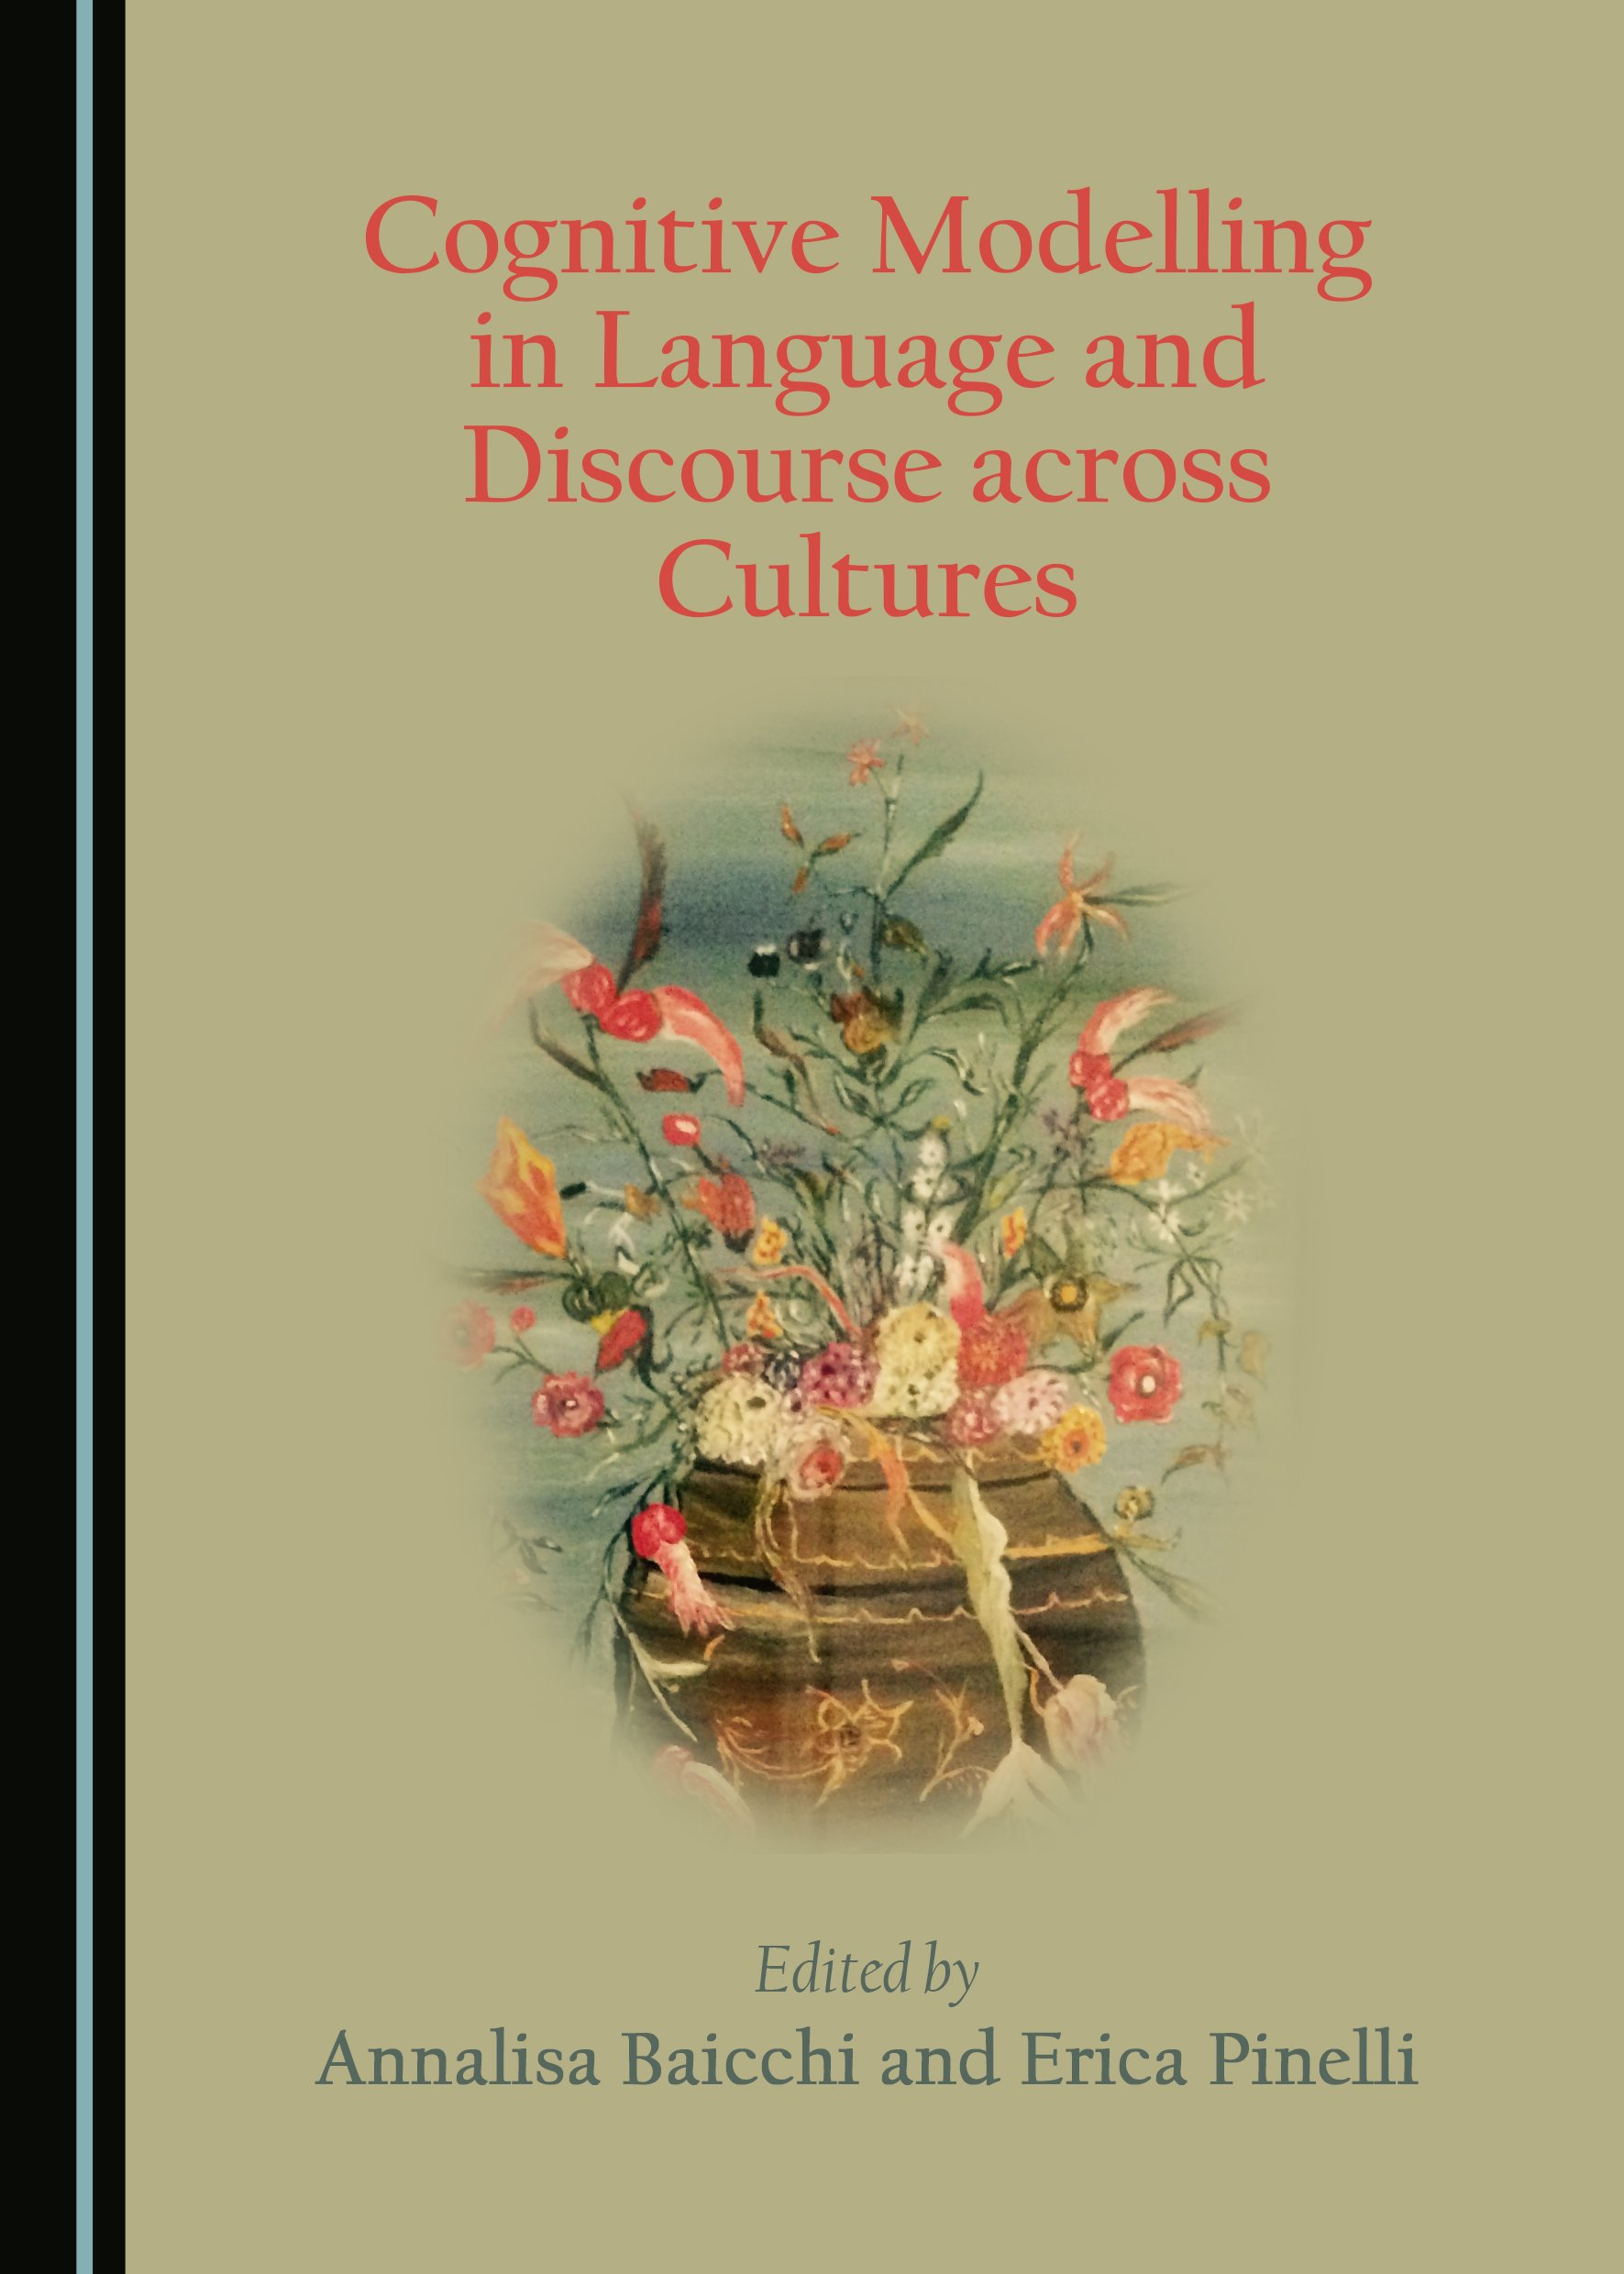 Cognitive Modelling in Language and Discourse across Cultures